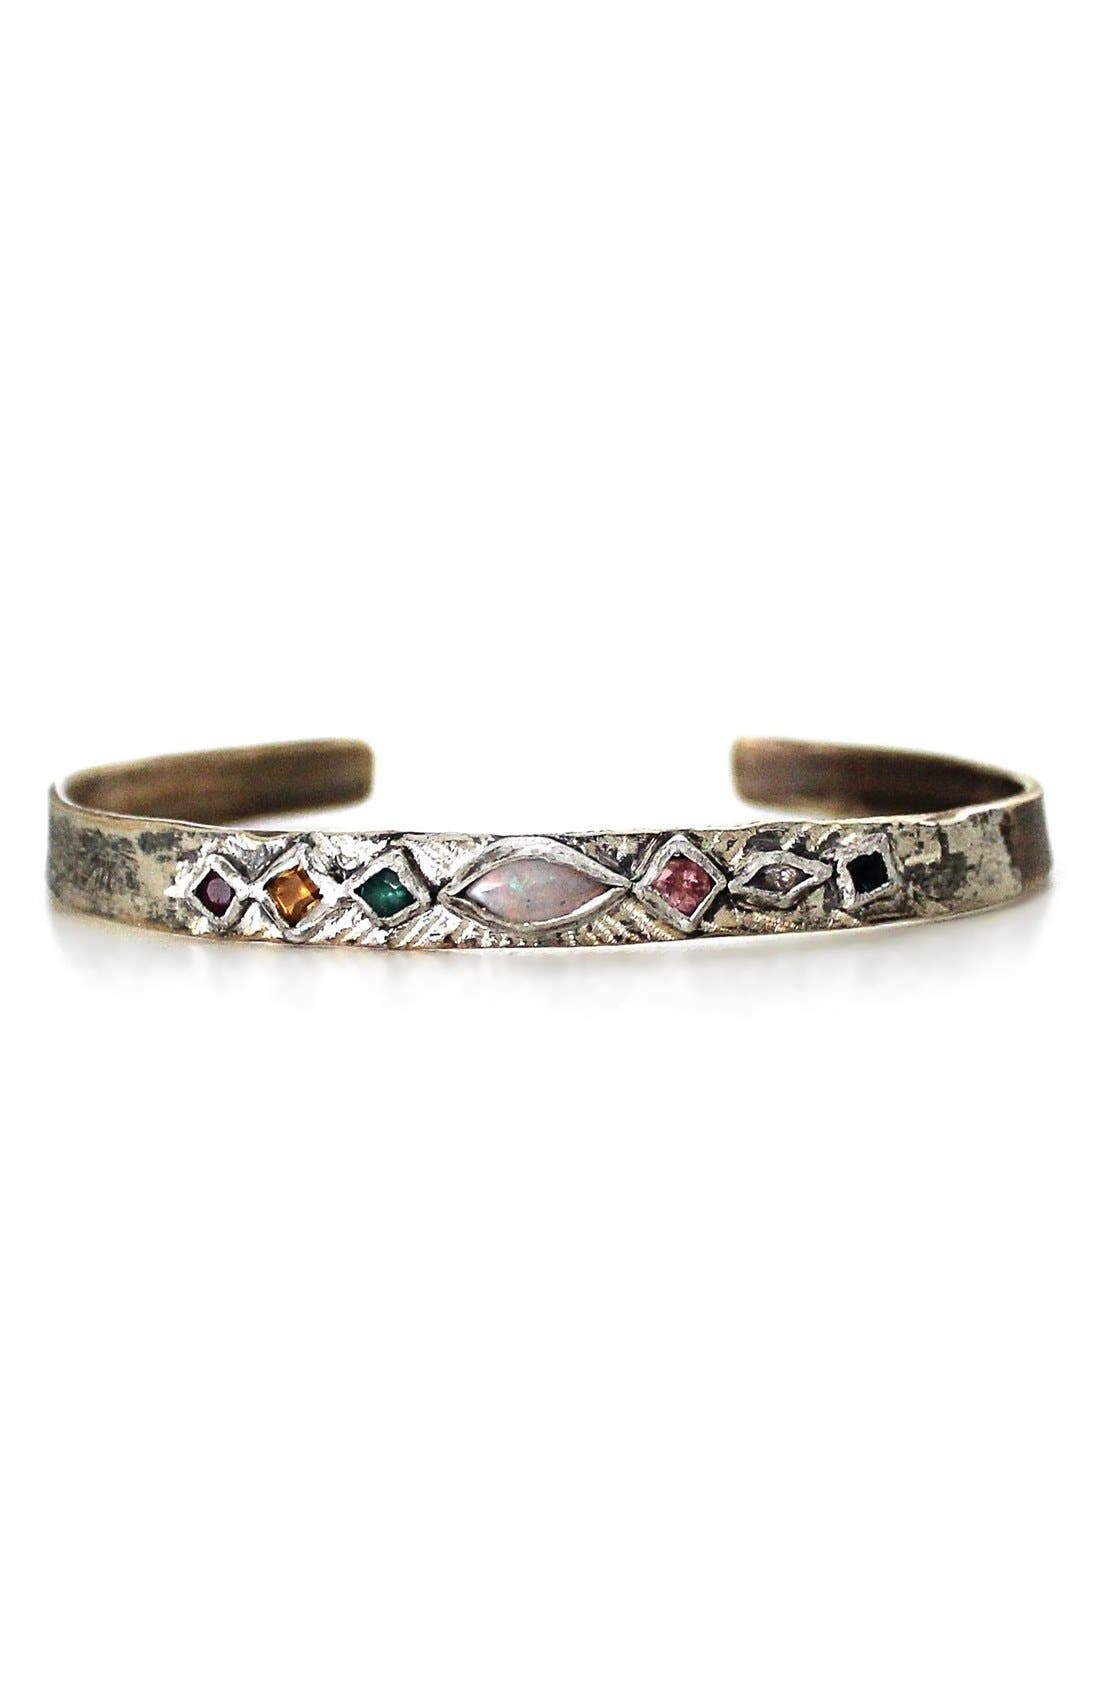 Mixed Gem Cuff Bracelet,                             Main thumbnail 1, color,                             Bronze Multi